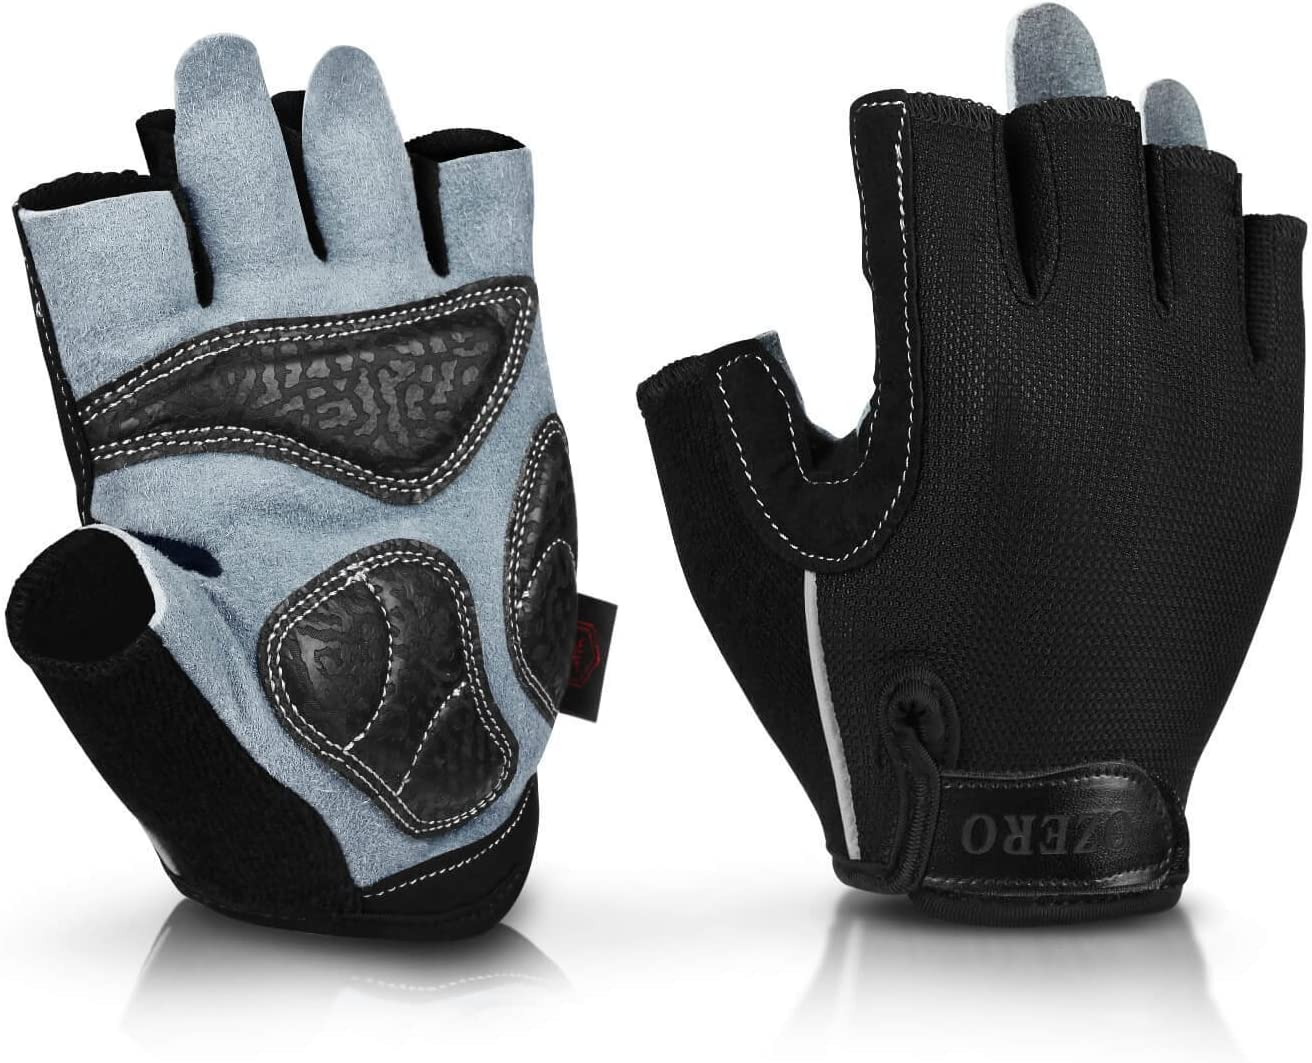 OZERO Fingerless Gloves,Leather Gym Gloves for Fitness,Workout,Cycling,1 Pair